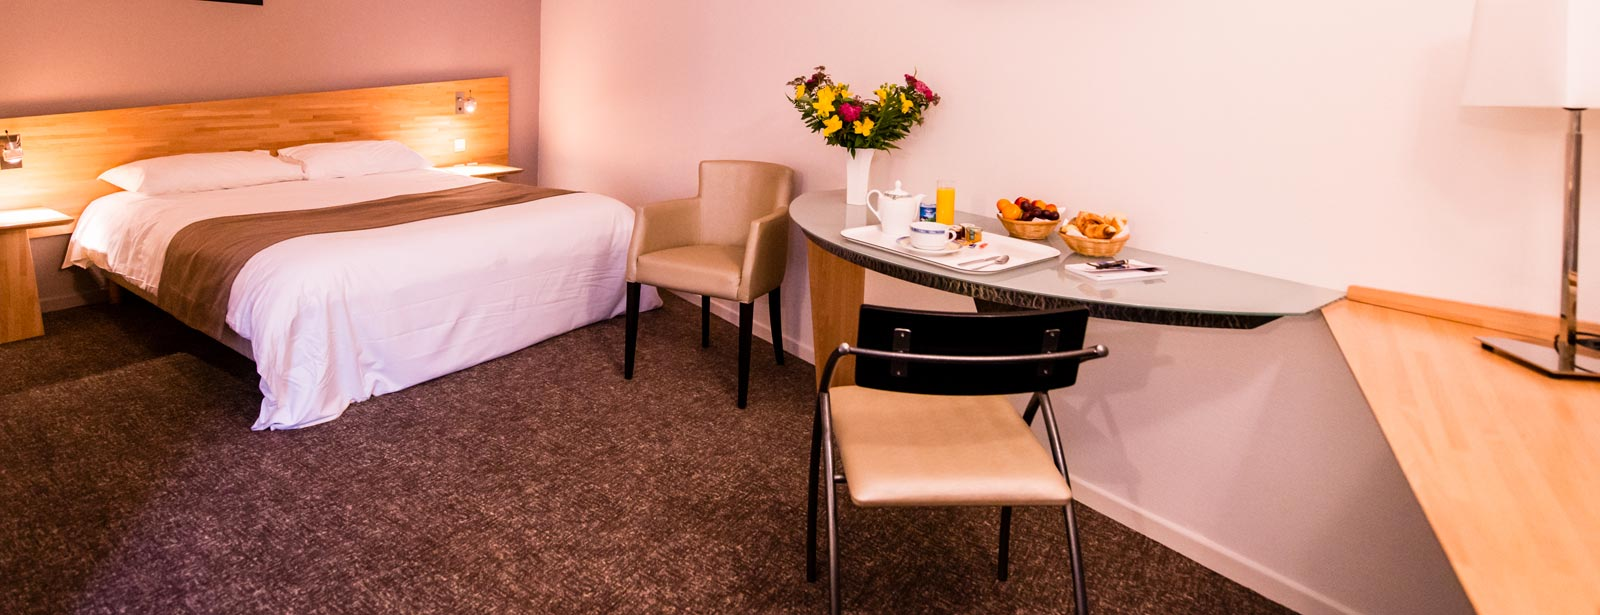 chambre famille quality Hotel pau